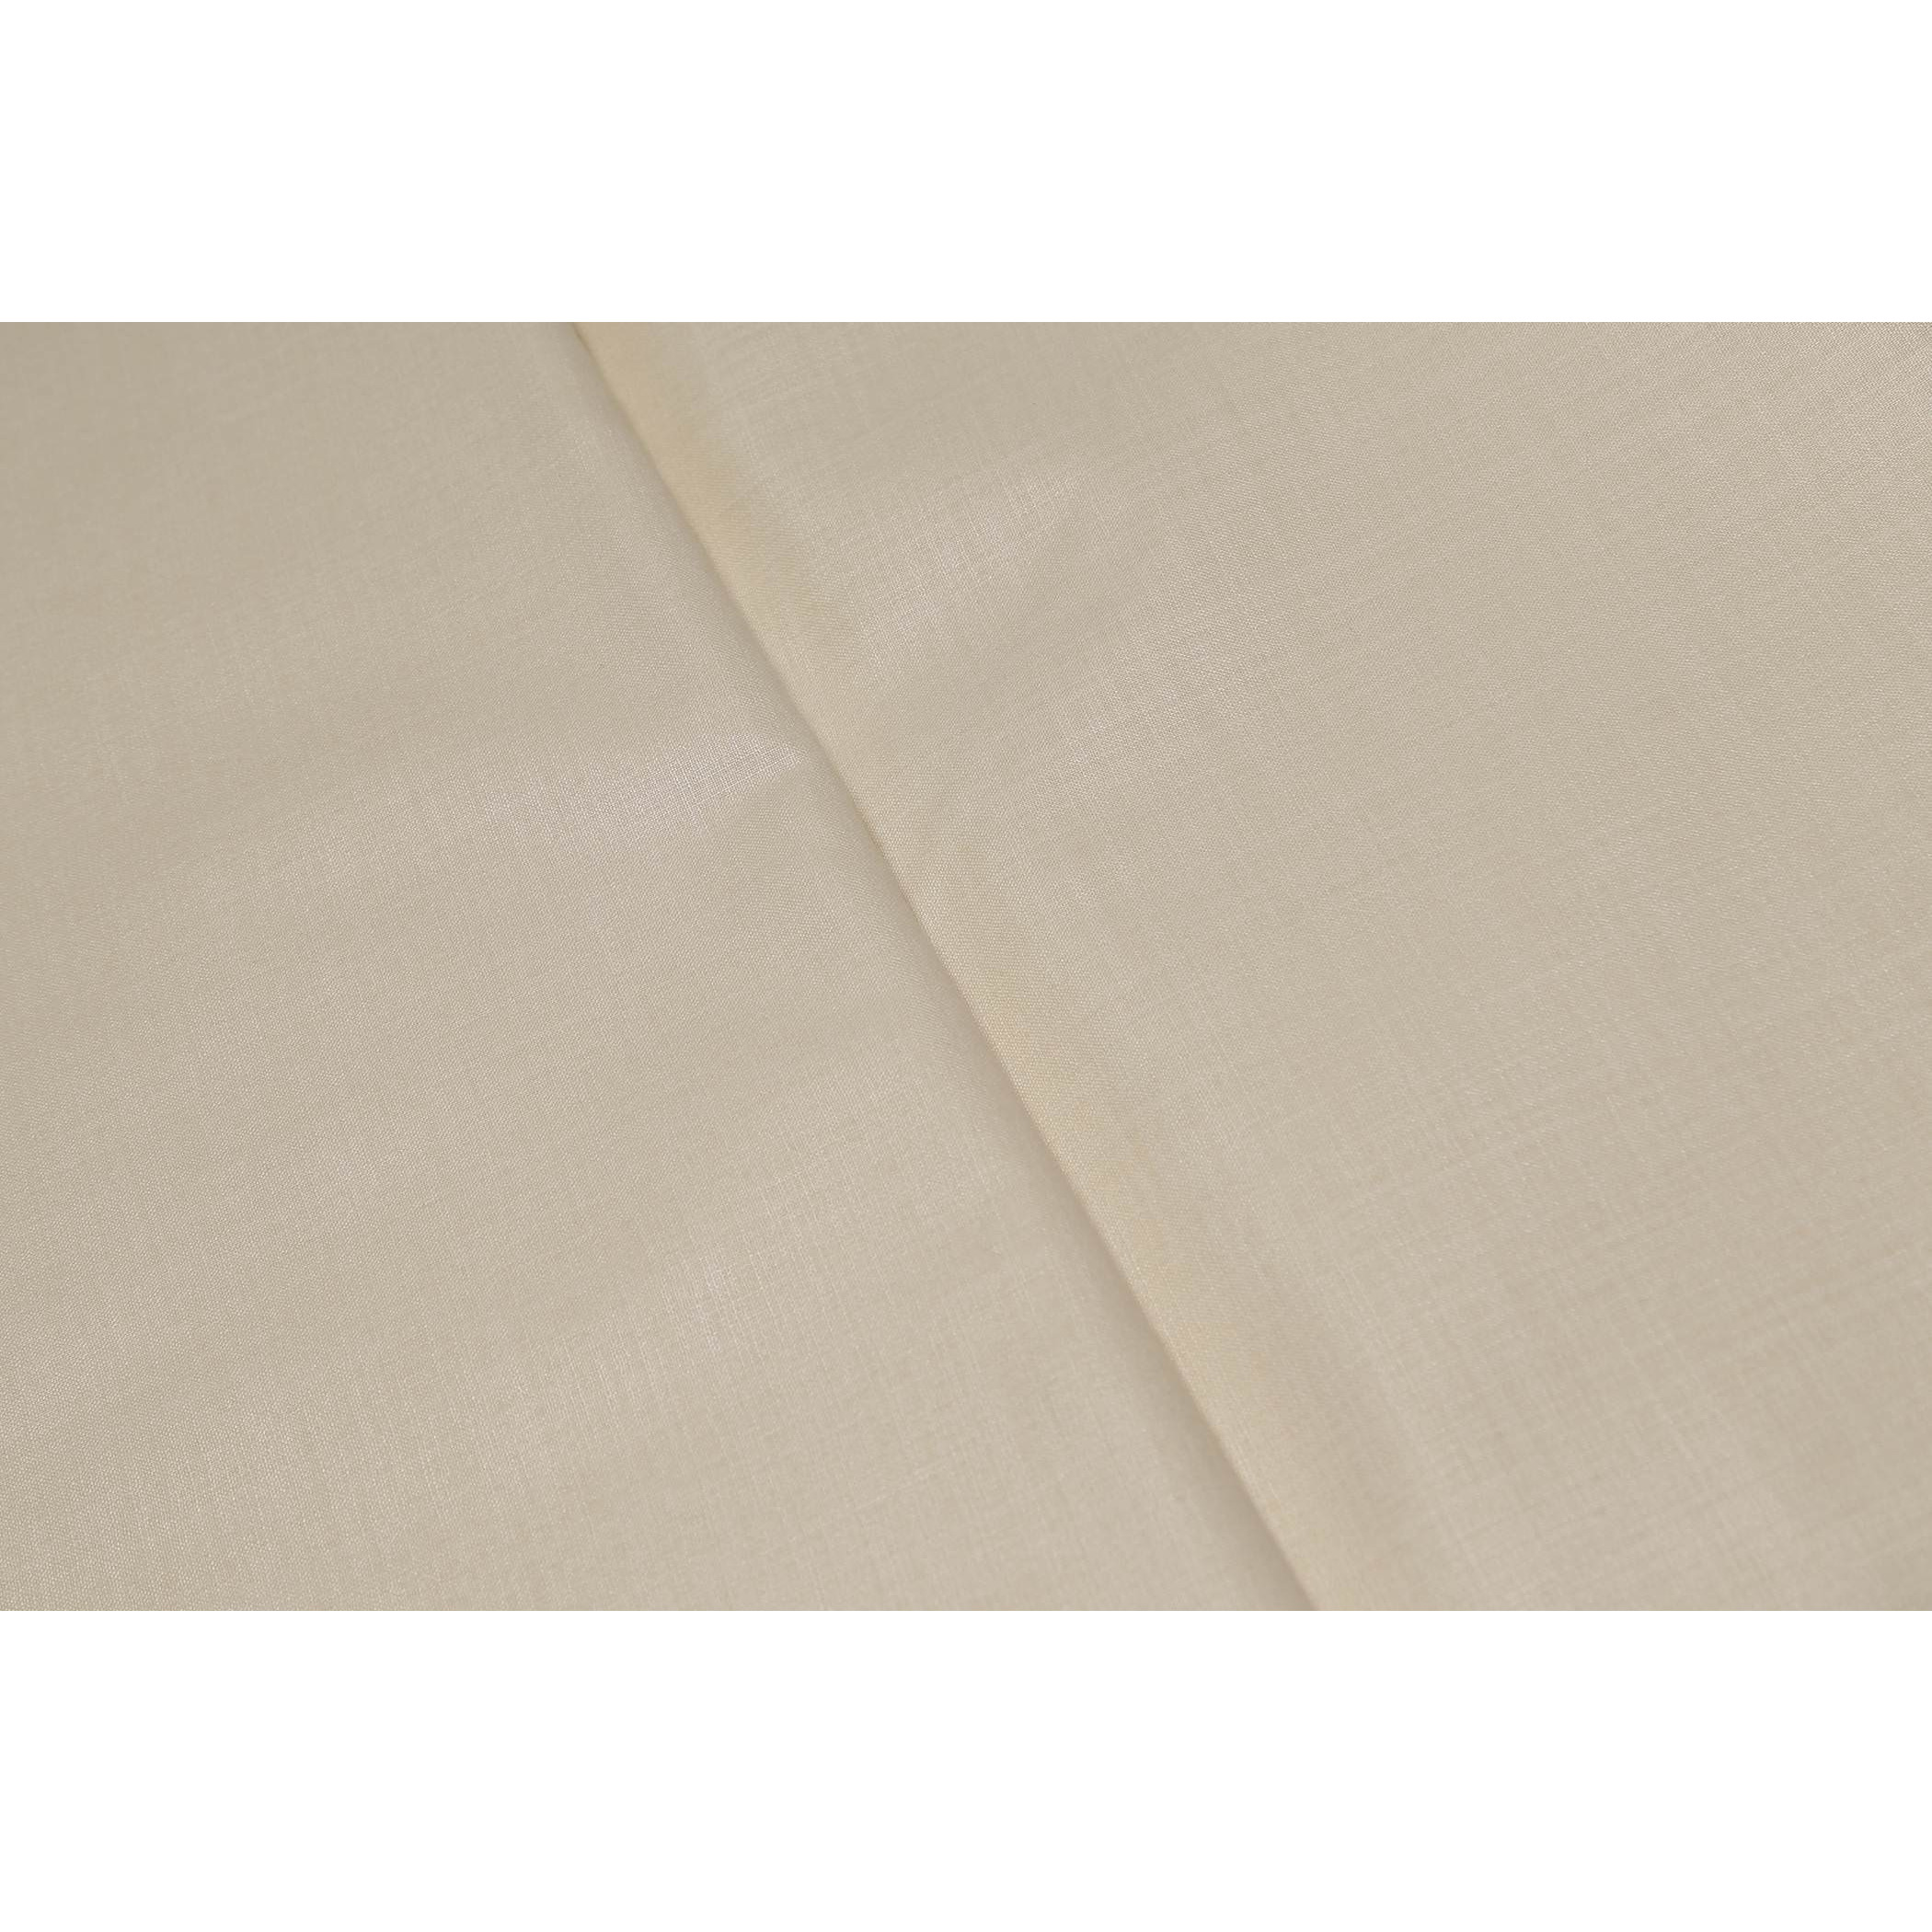 Sojanya (Since 1958)B 5 Metres Cotton Blend Shirt Fabric Solid Fine Quality